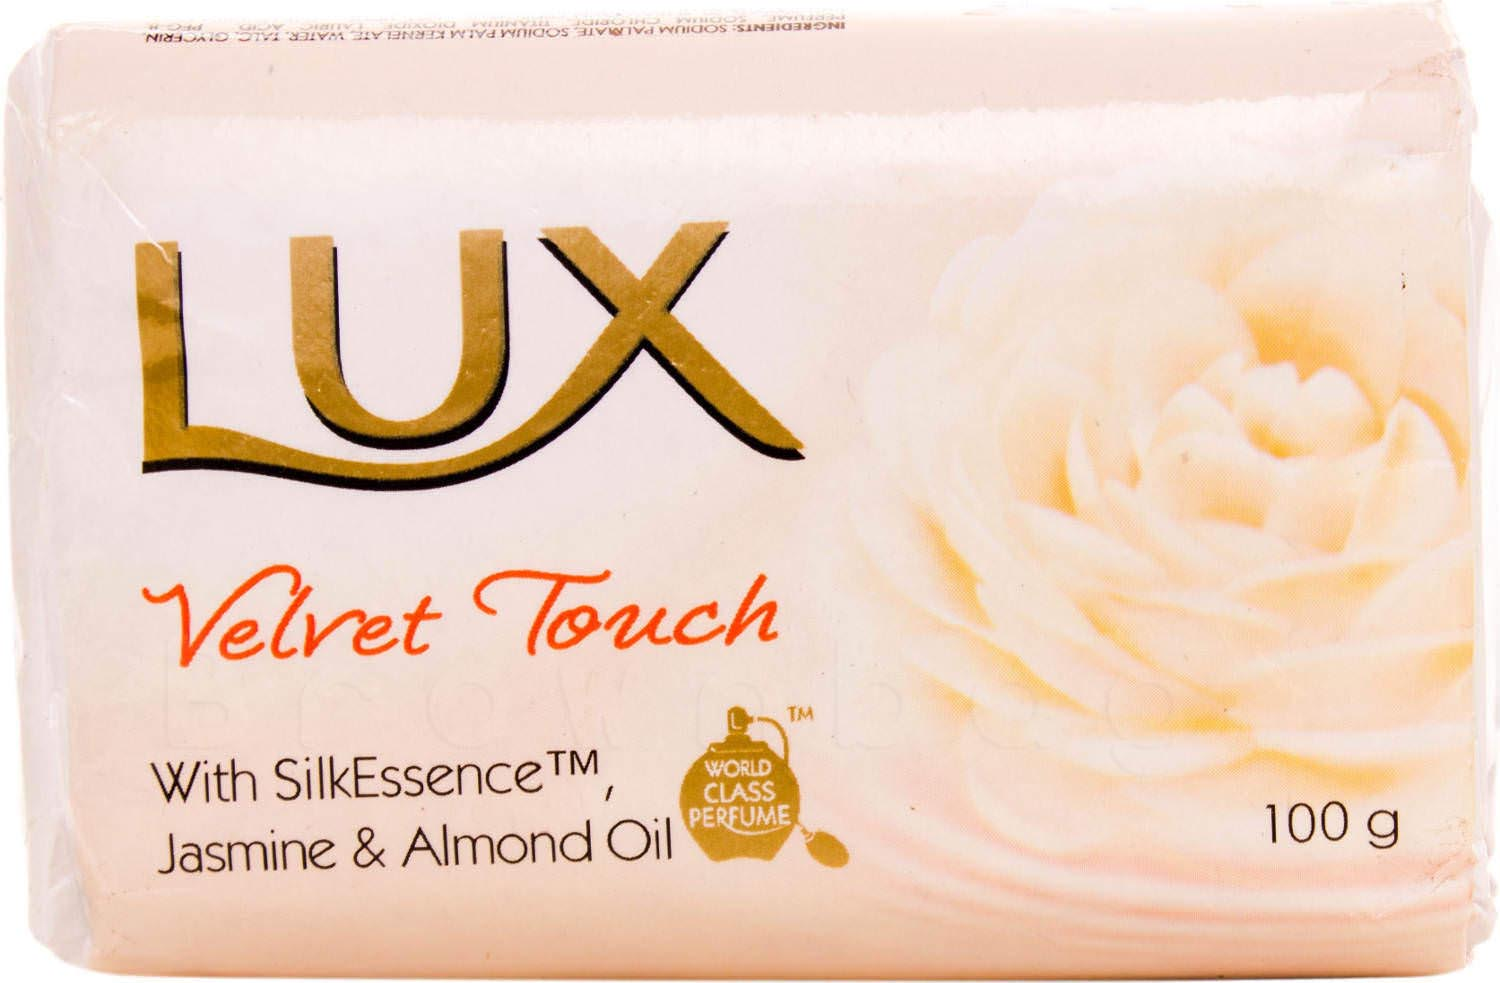 Lux Velvet Touch Body Soap with SilkEssence, Jasmine & Almond Oil